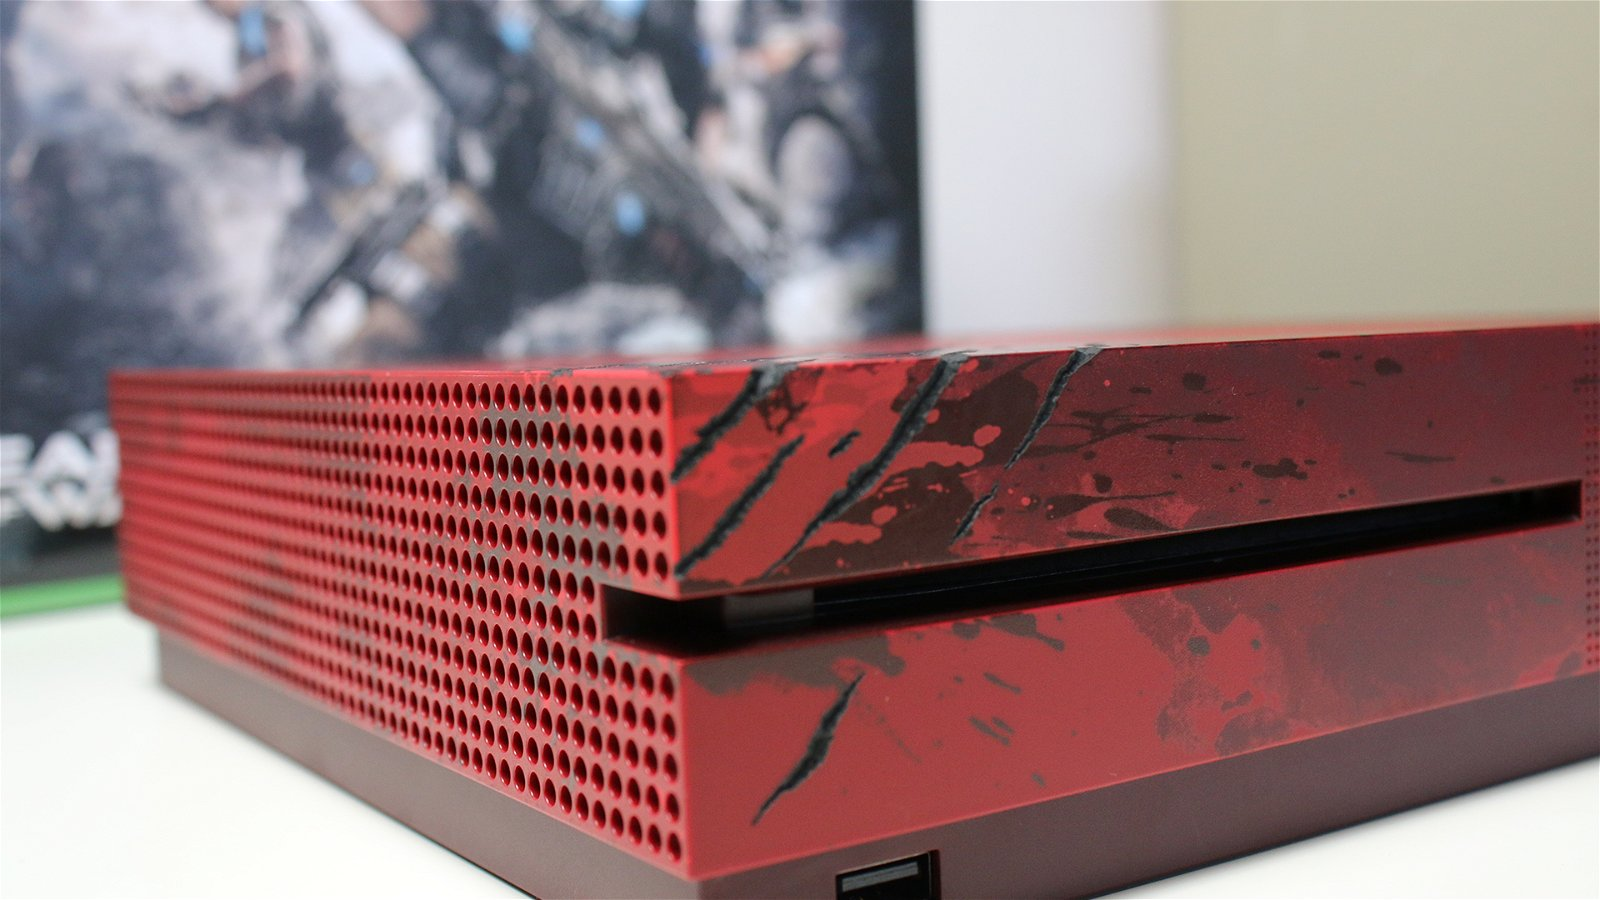 Unboxing the Gears of War 4 Xbox One S 9